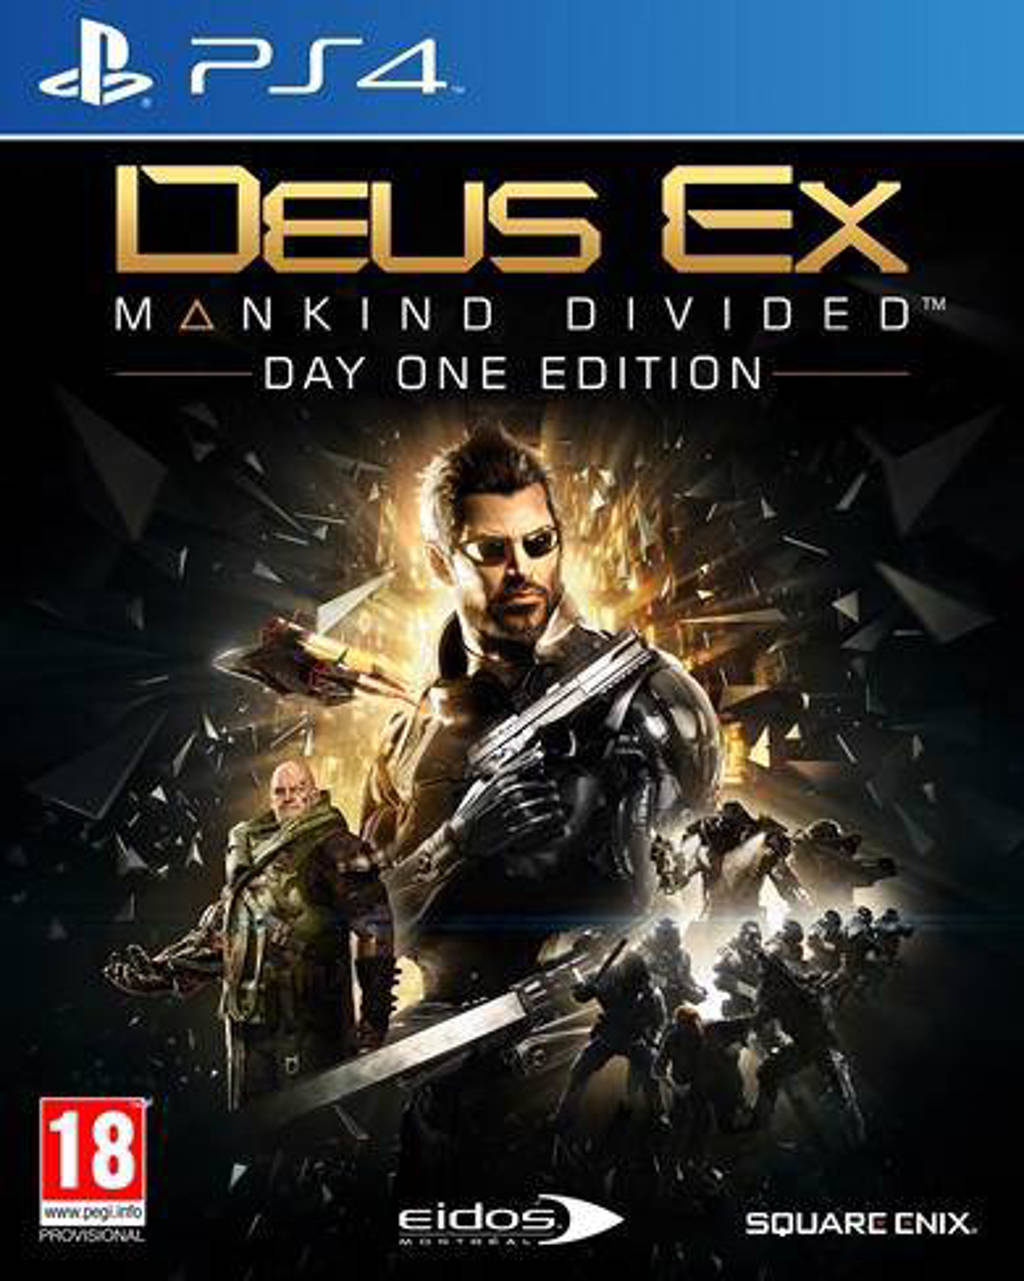 Deus ex - Mankind divided (Day one edition) (PlayStation 4)